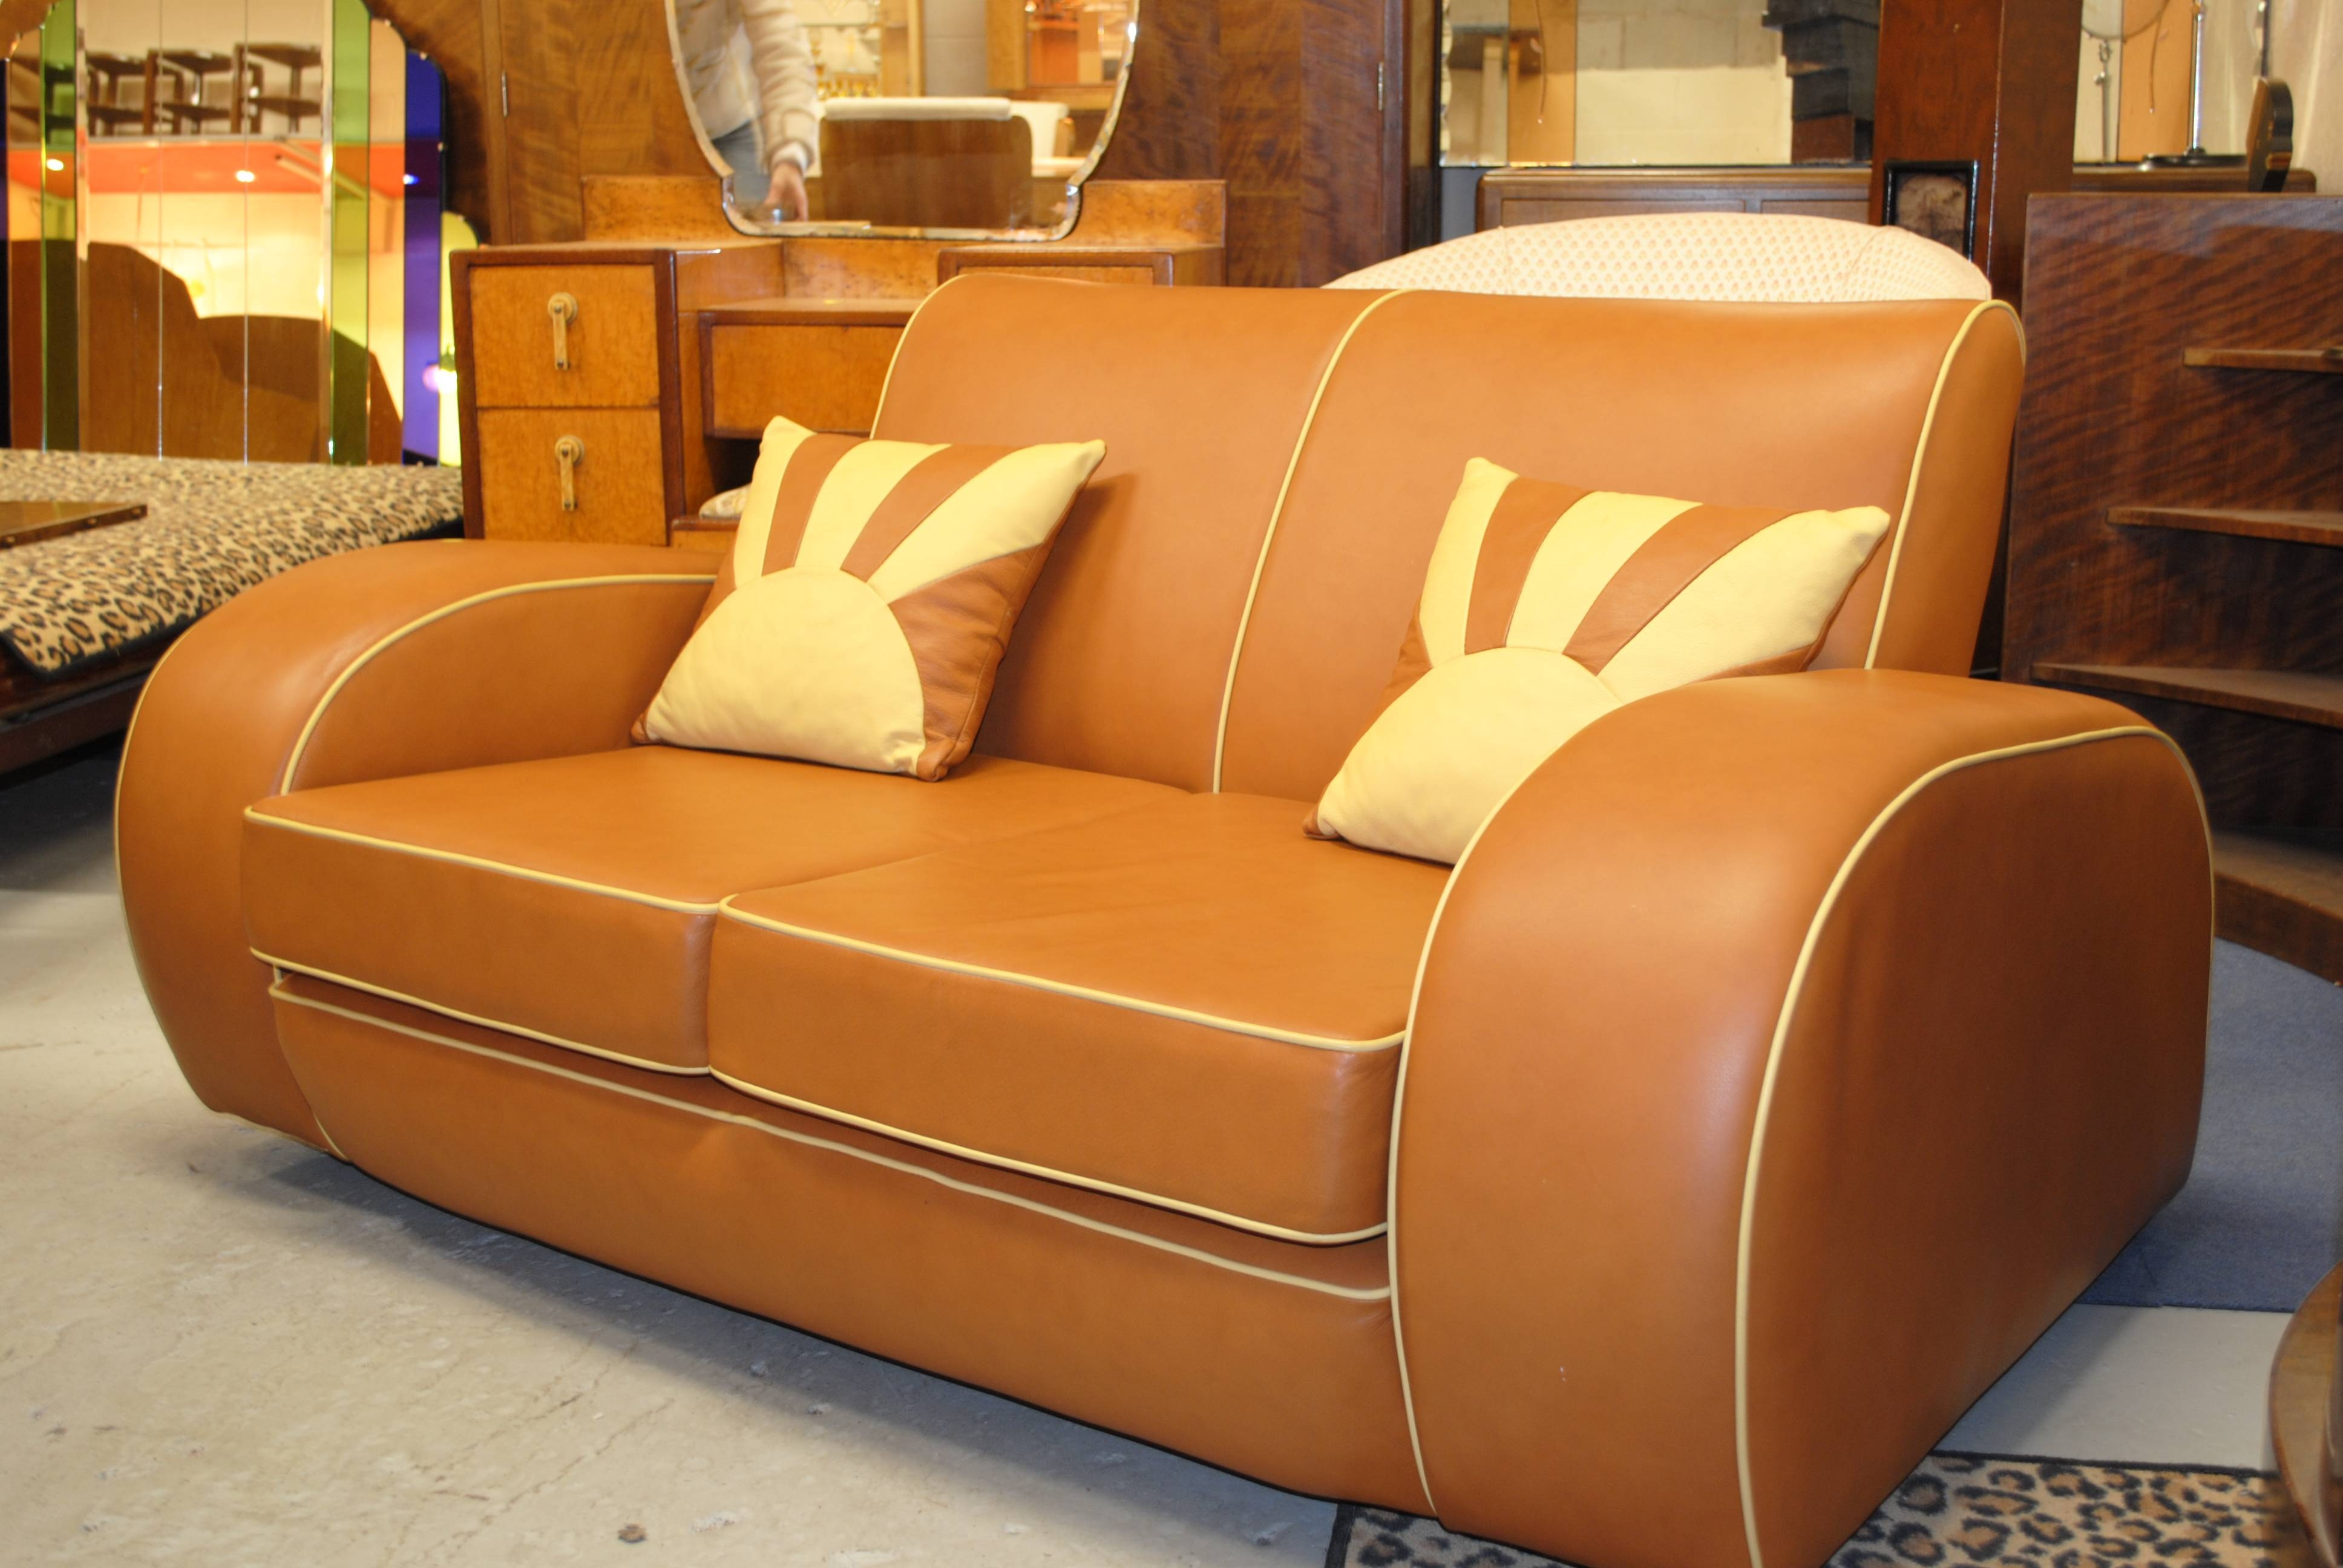 Art Deco Sofa And Chairs | Sofas Decoration throughout Art Deco Sofa and Chairs (Image 7 of 15)